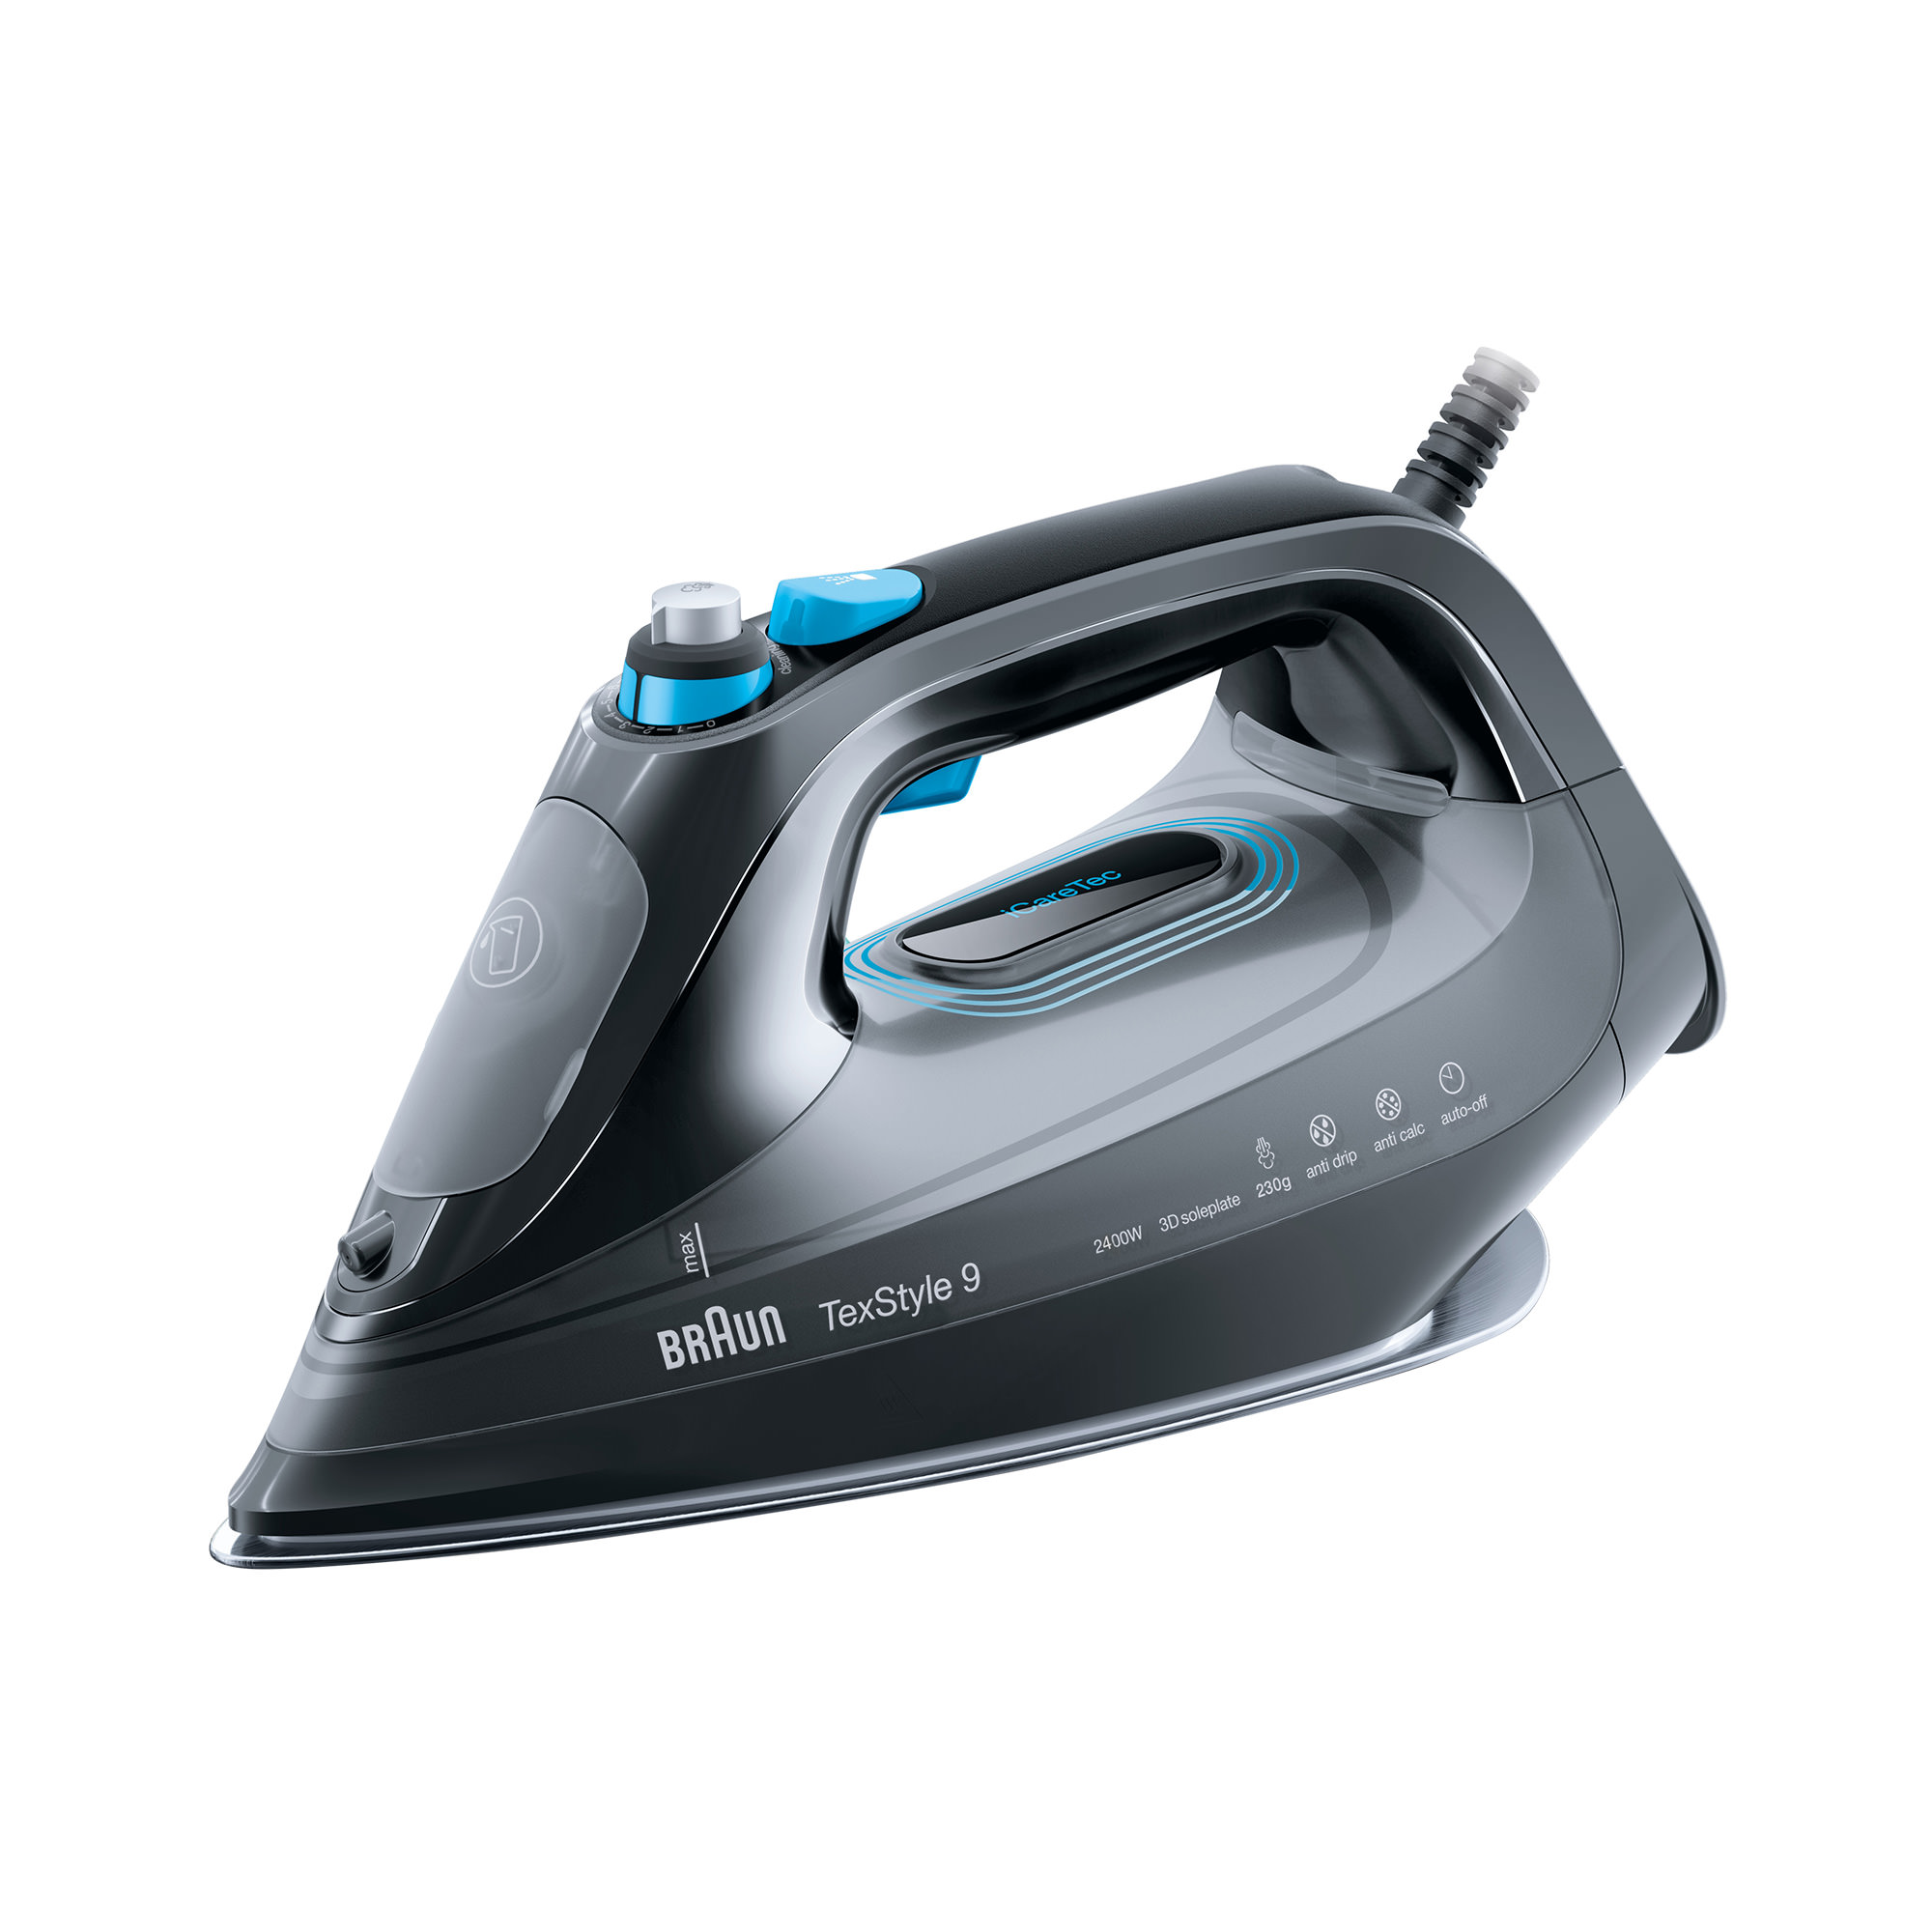 Braun TexStyle 9 Steam Iron Onyx Black